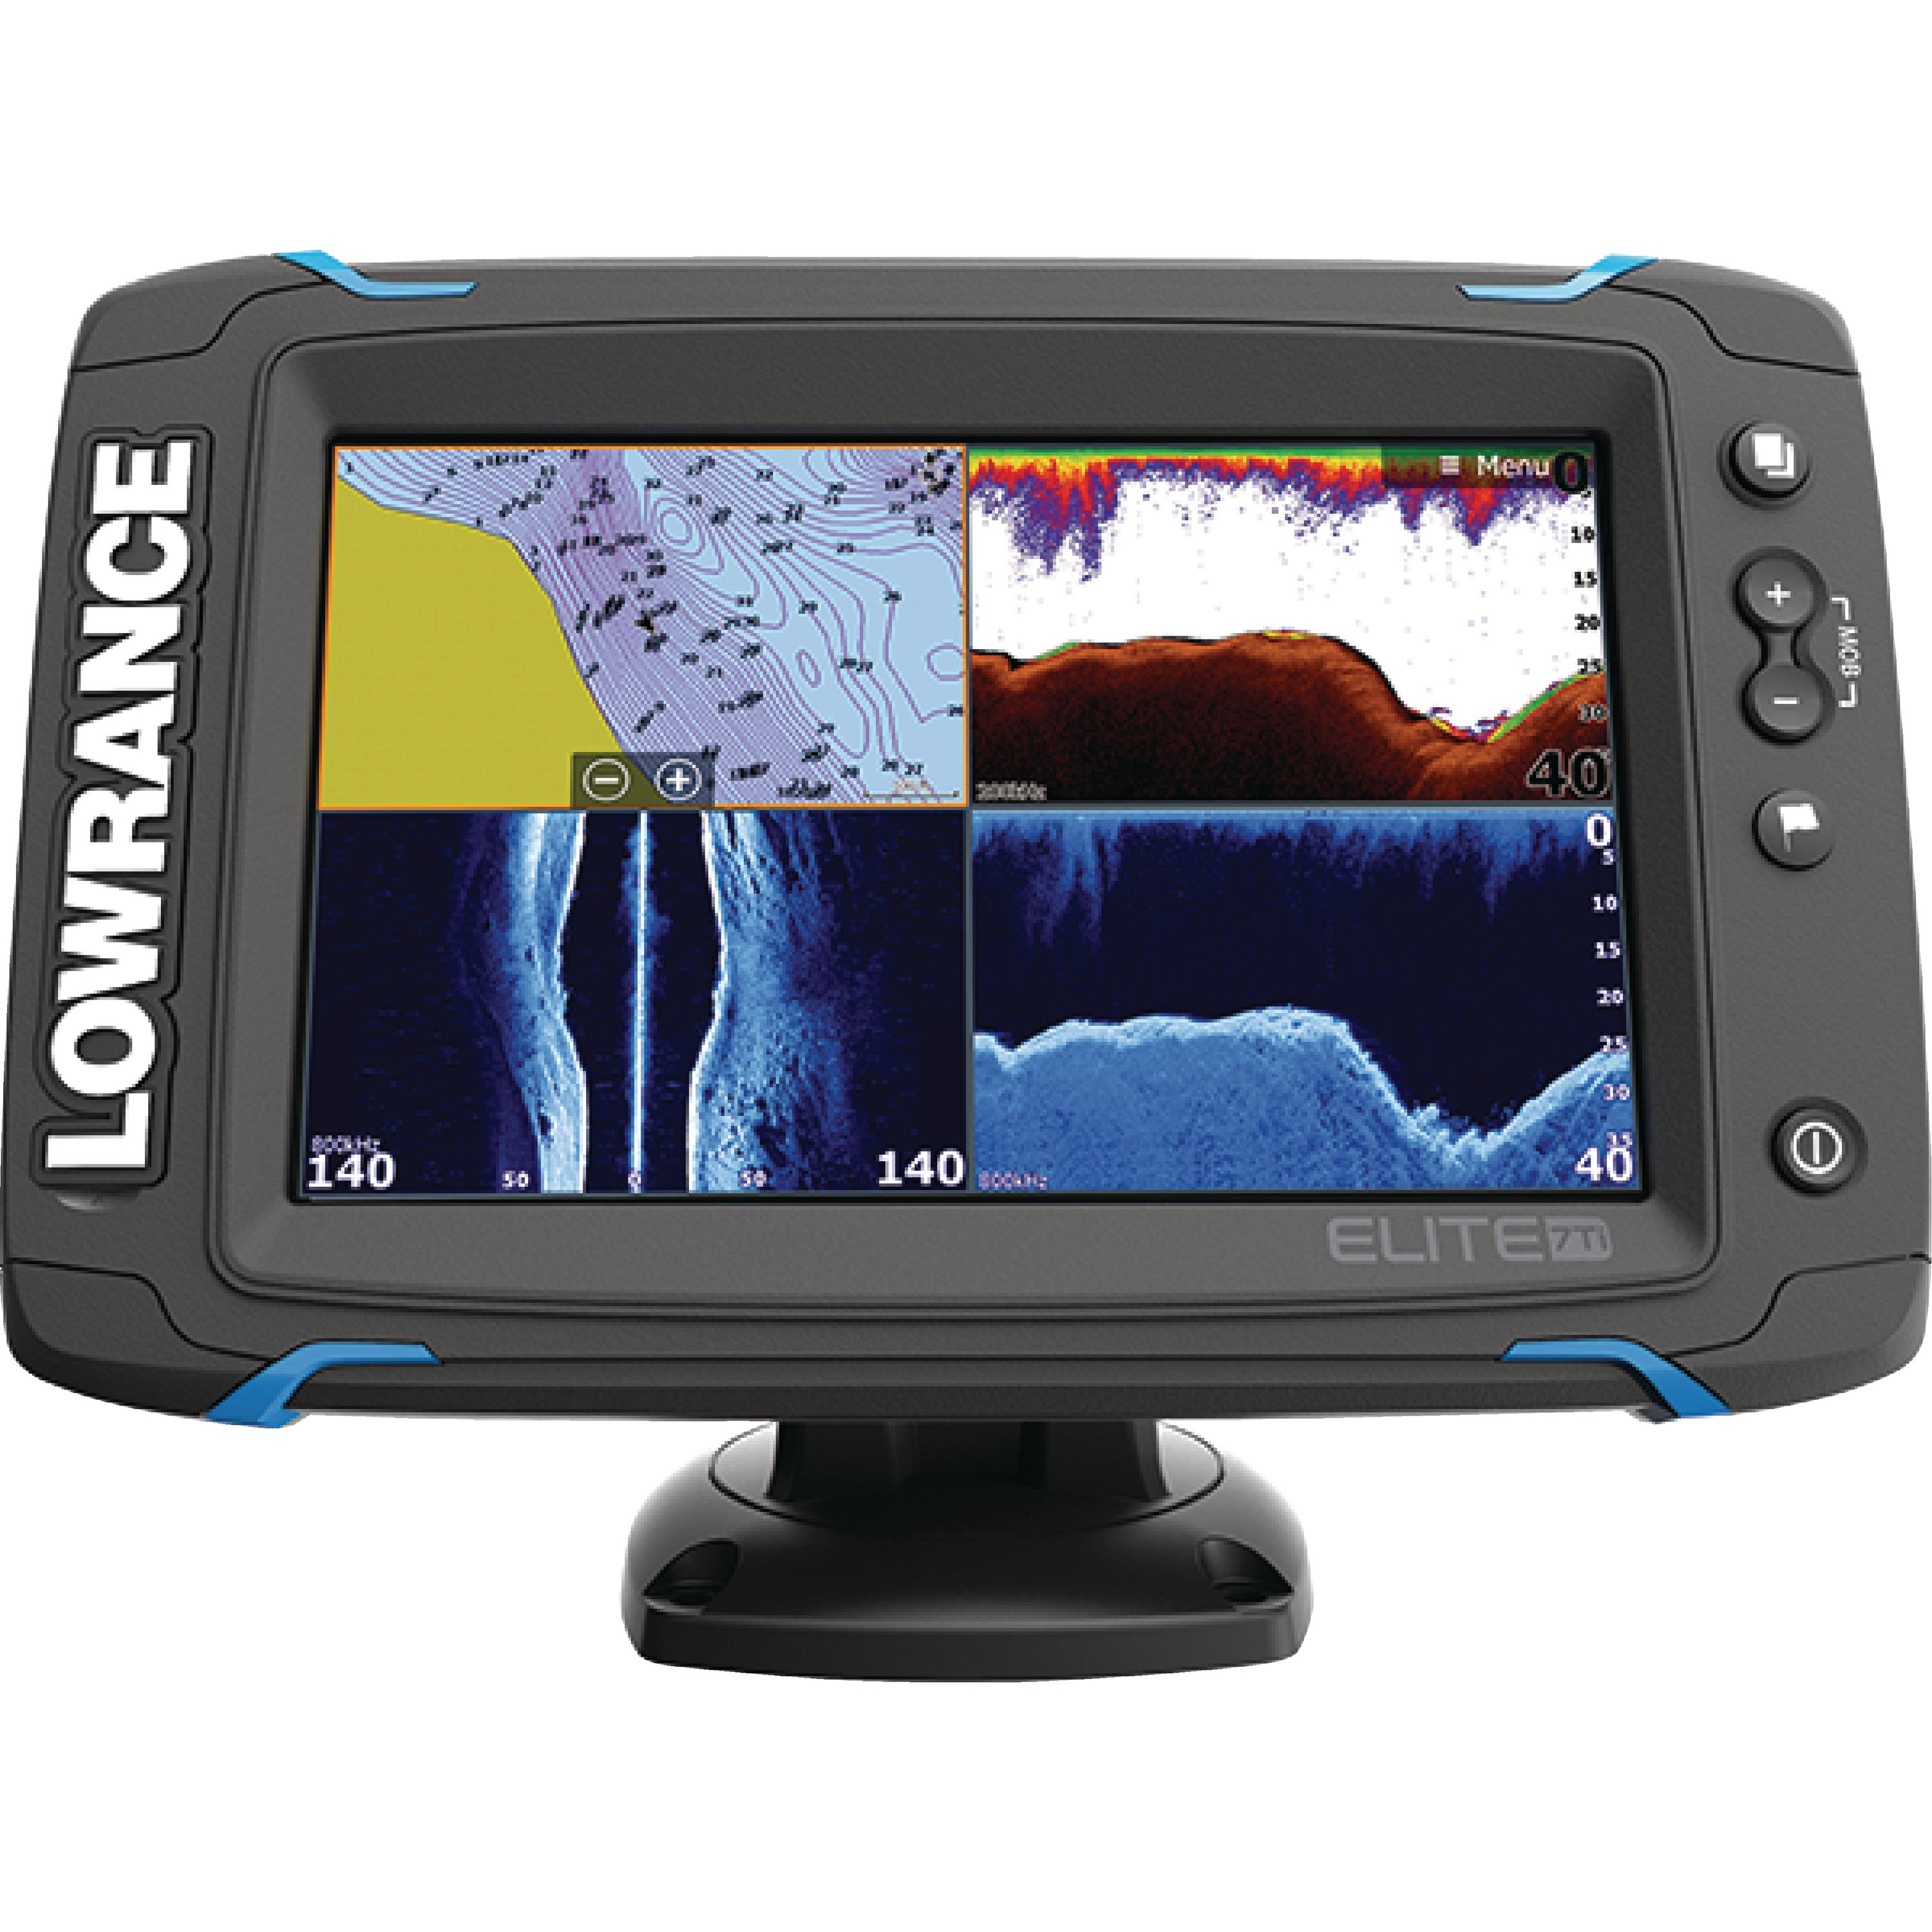 "Lowrance 000-12417-001 Elite-7Ti Touchscreen Fishfinder & Chartplotter with CHIRP Sonar, GPS, DownScan Imaging, Hybrid Dual Imaging, & 7"" Display"